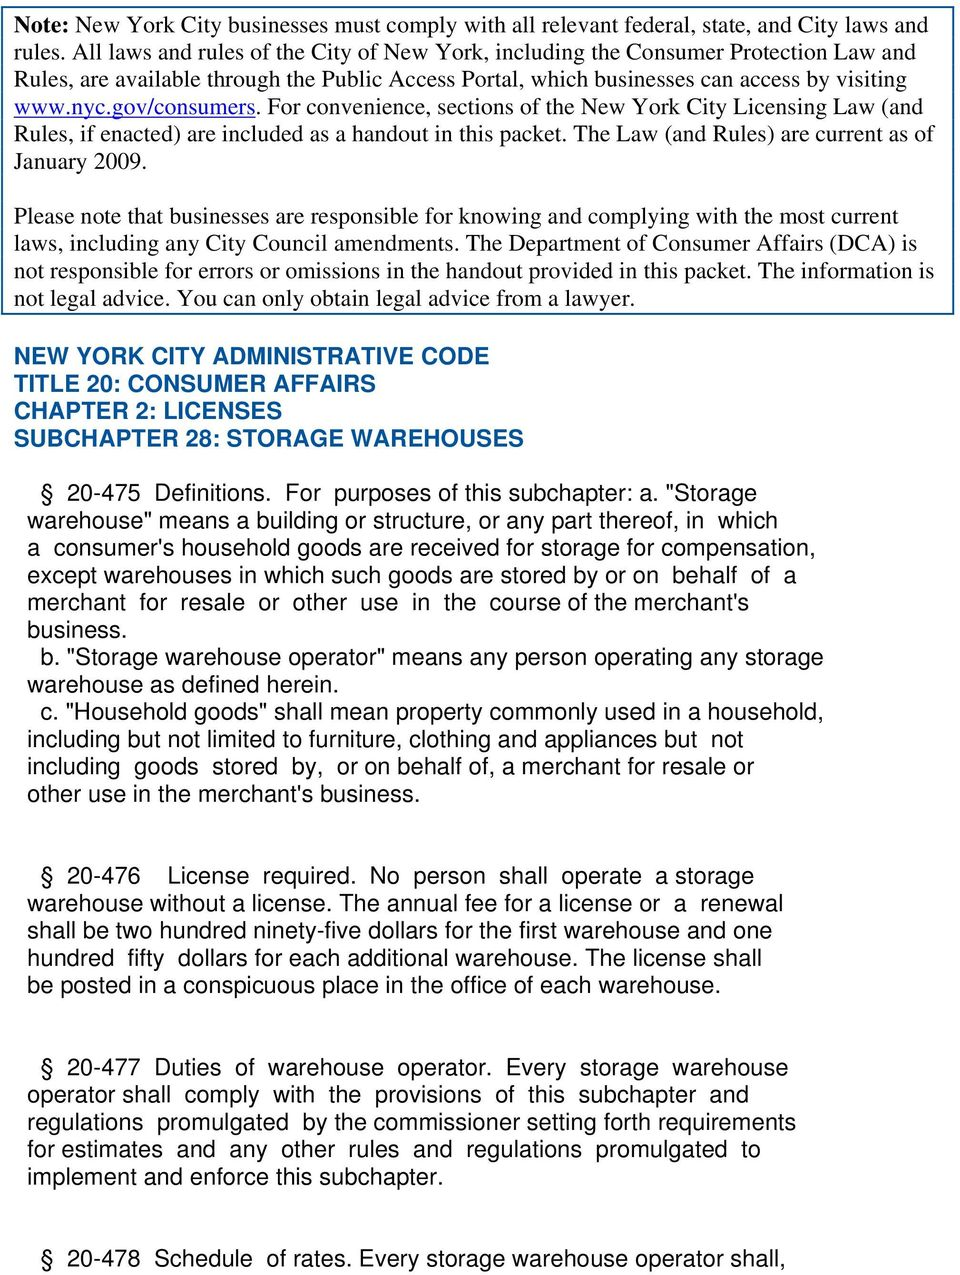 gov/consumers. For convenience, sections of the New York City Licensing Law (and Rules, if enacted) are included as a handout in this packet. The Law (and Rules) are current as of January 2009.